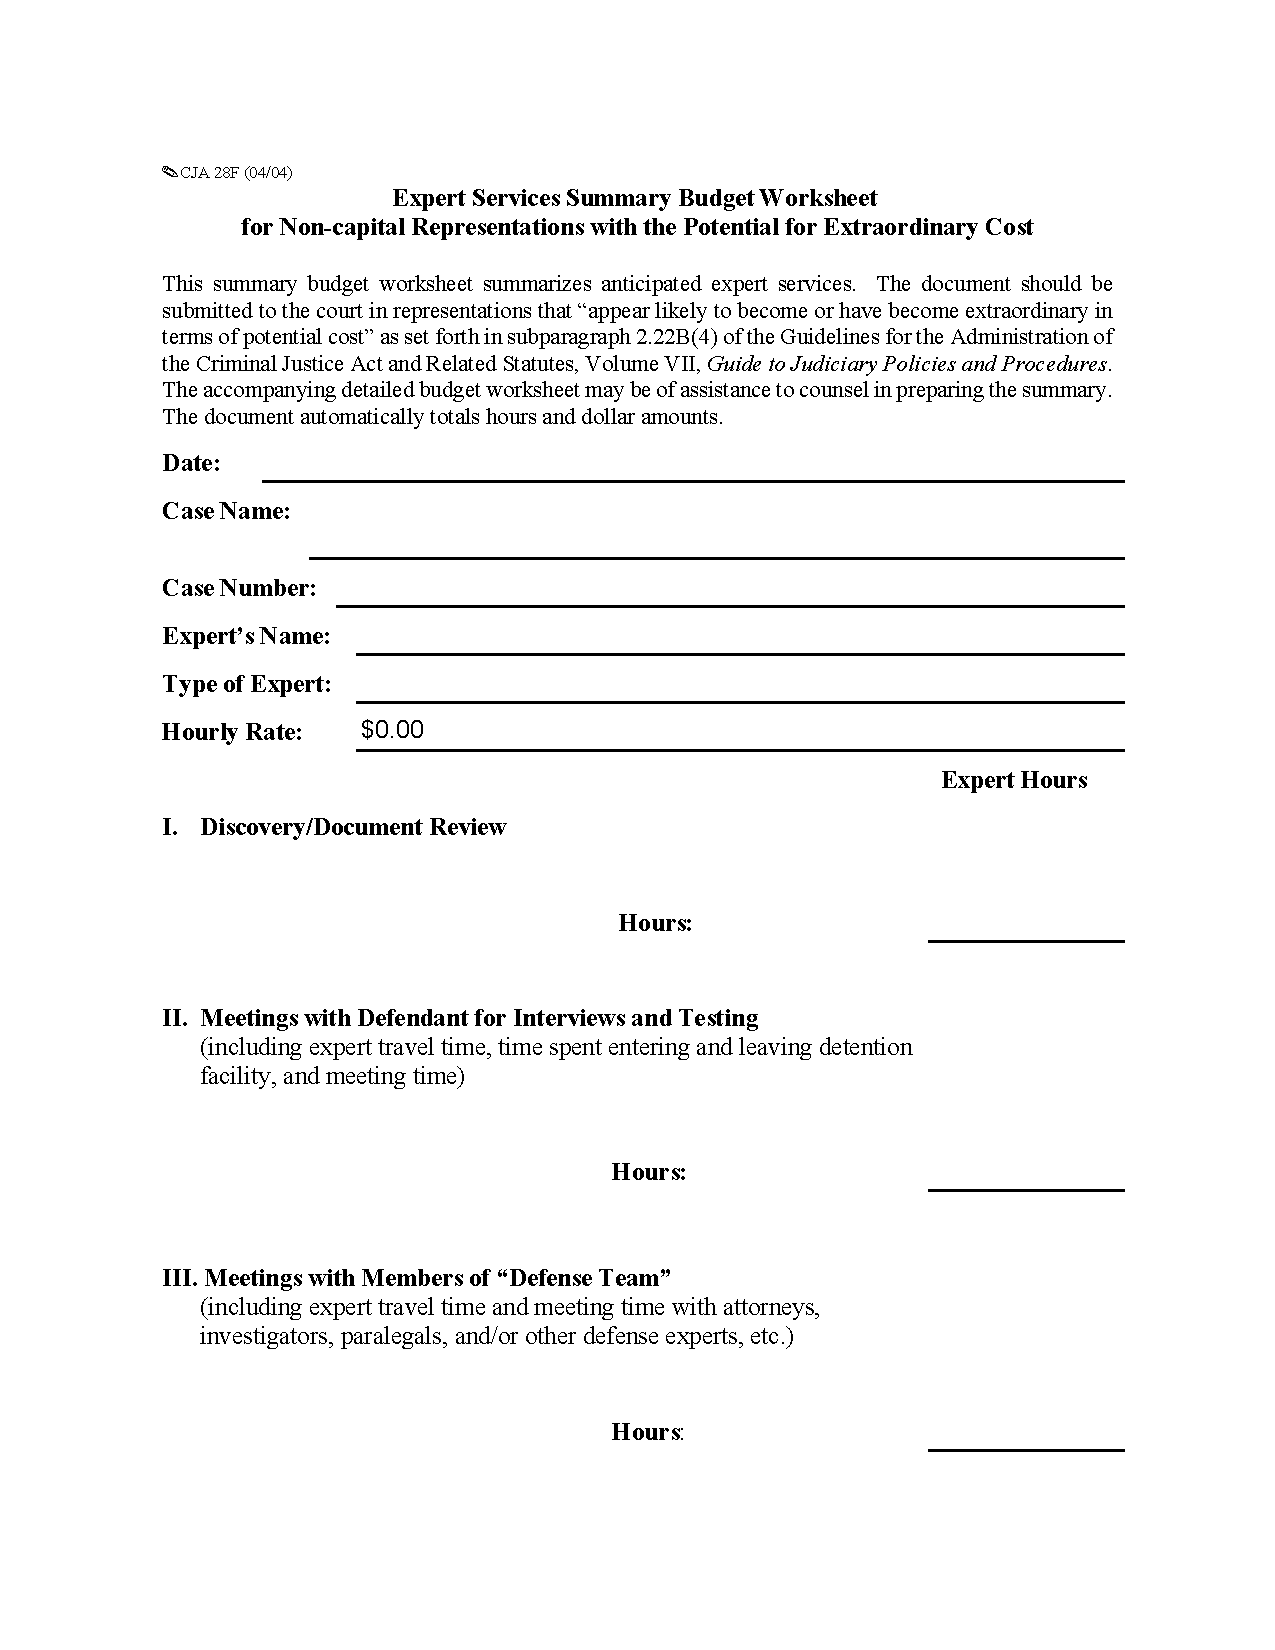 Form Cja F Expert Services Summary Budget Worksheet For Non Capital Representations With The